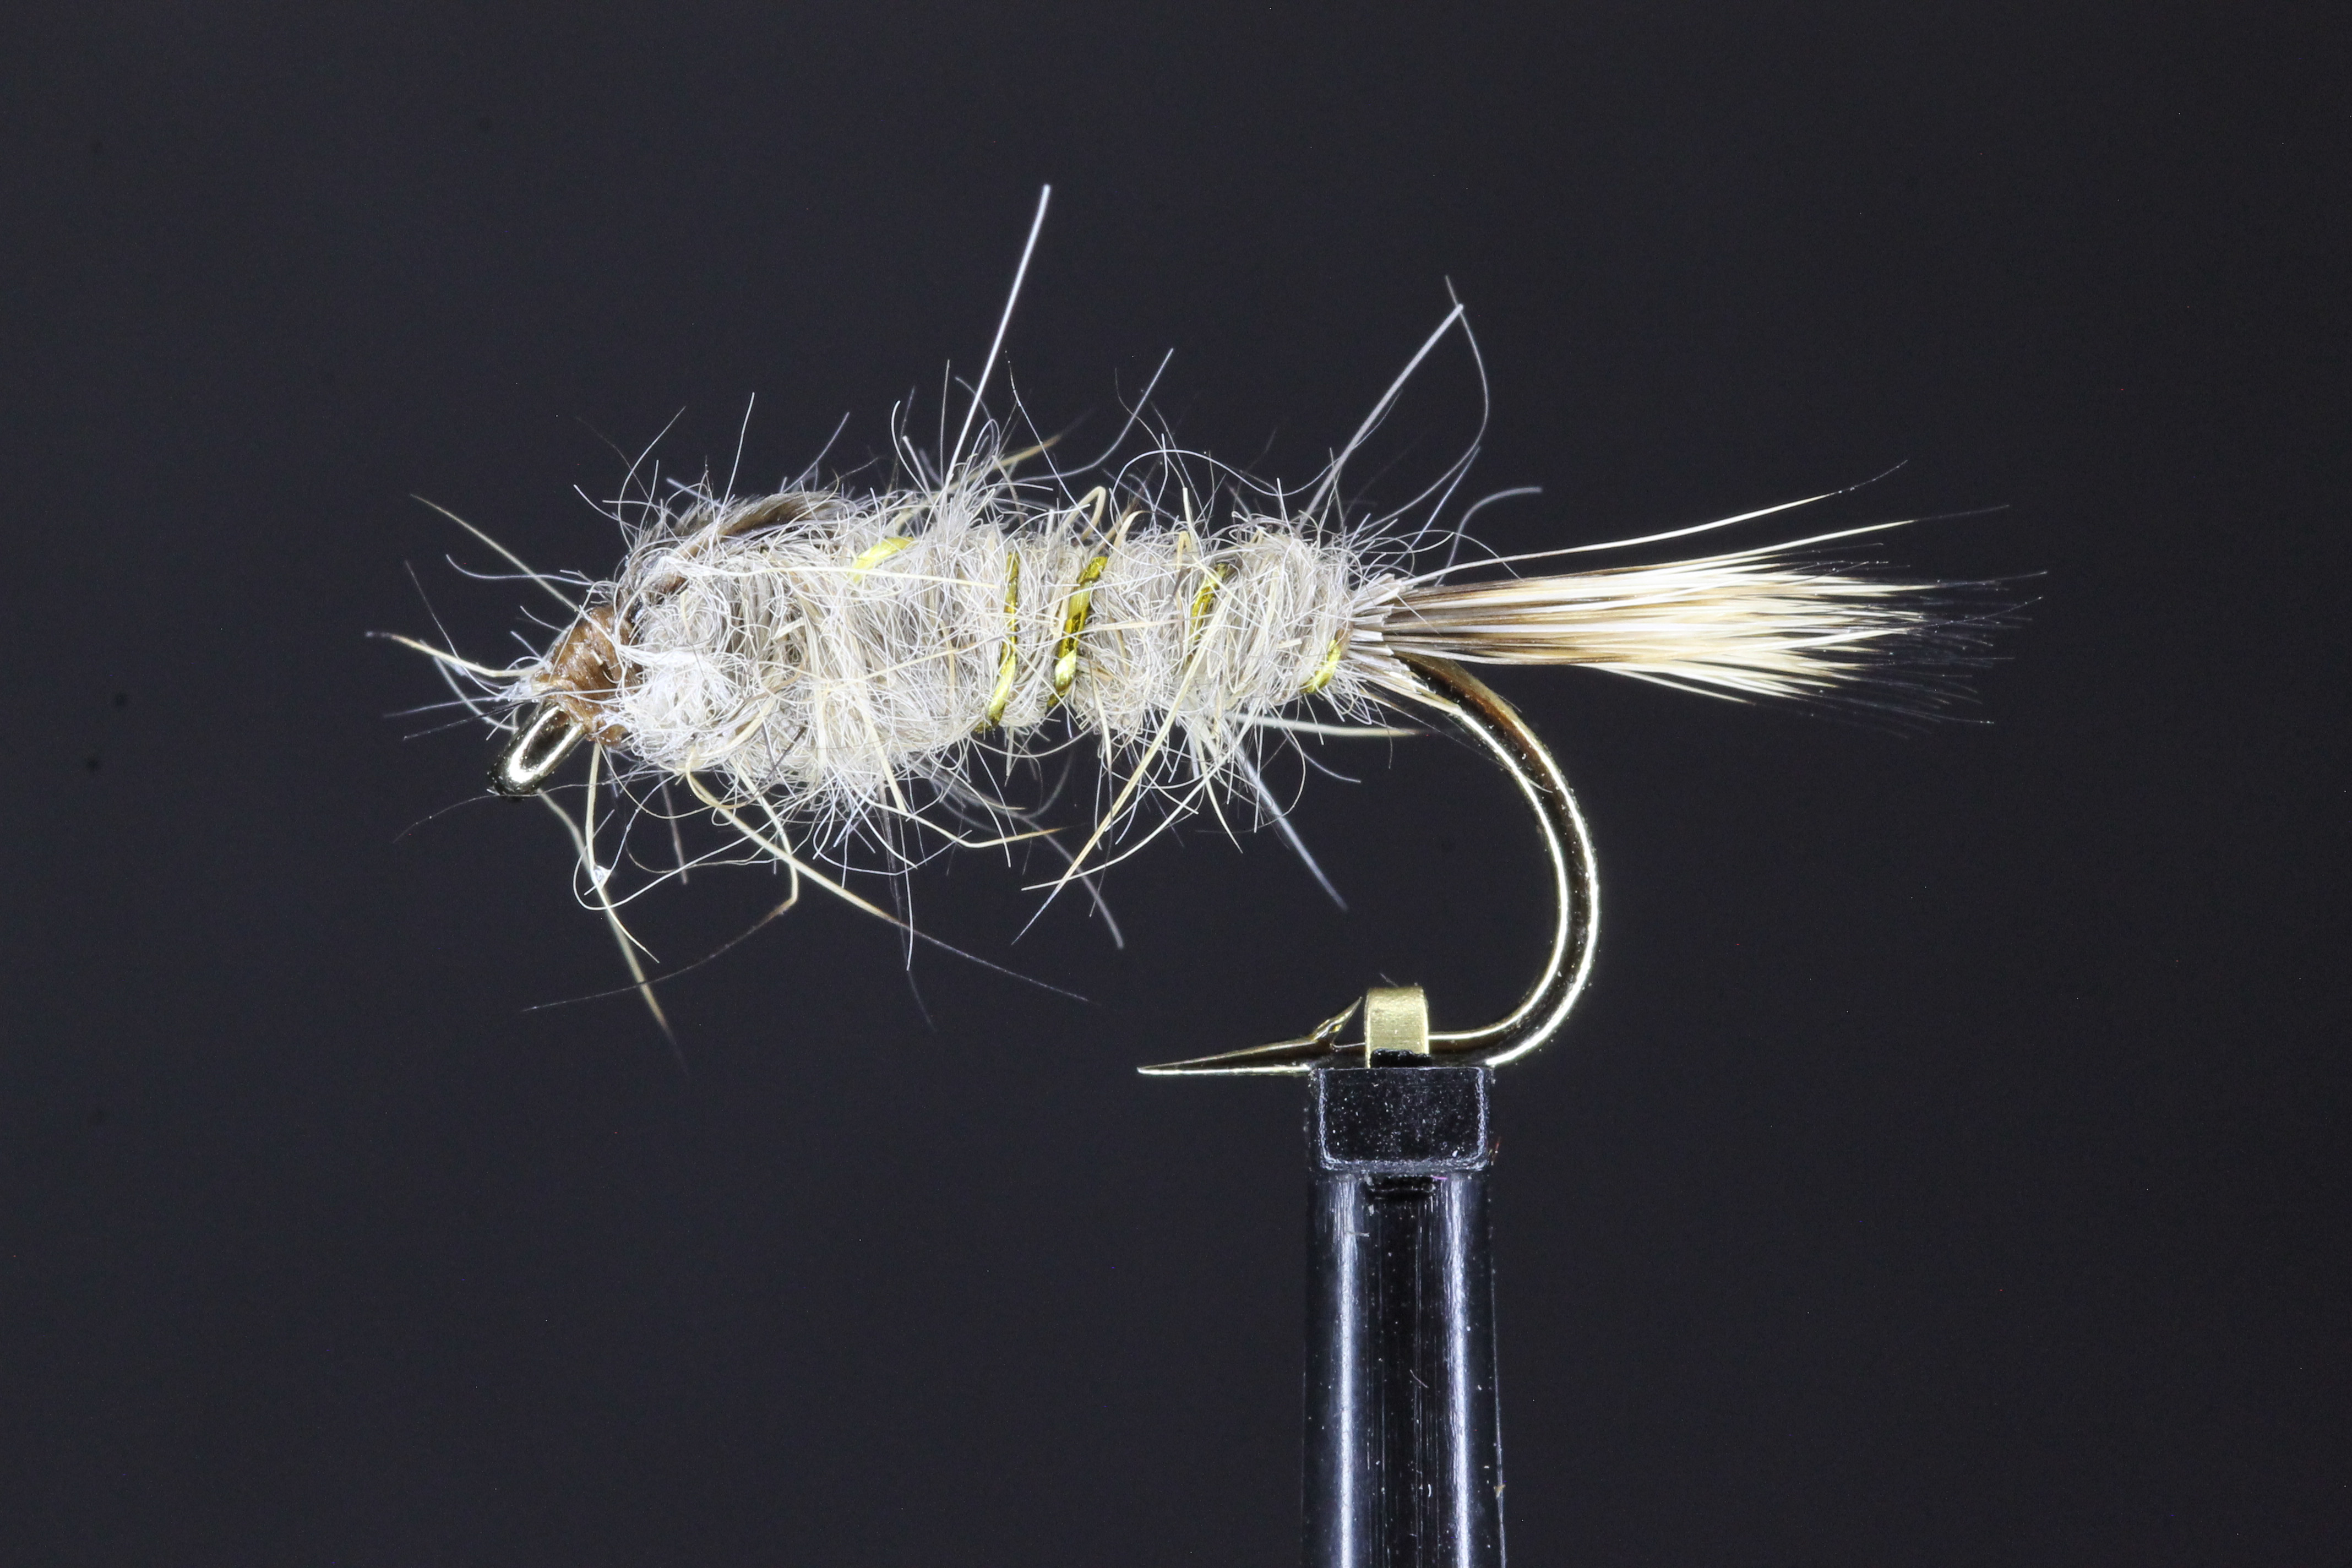 Hares Ear Nymph Fly